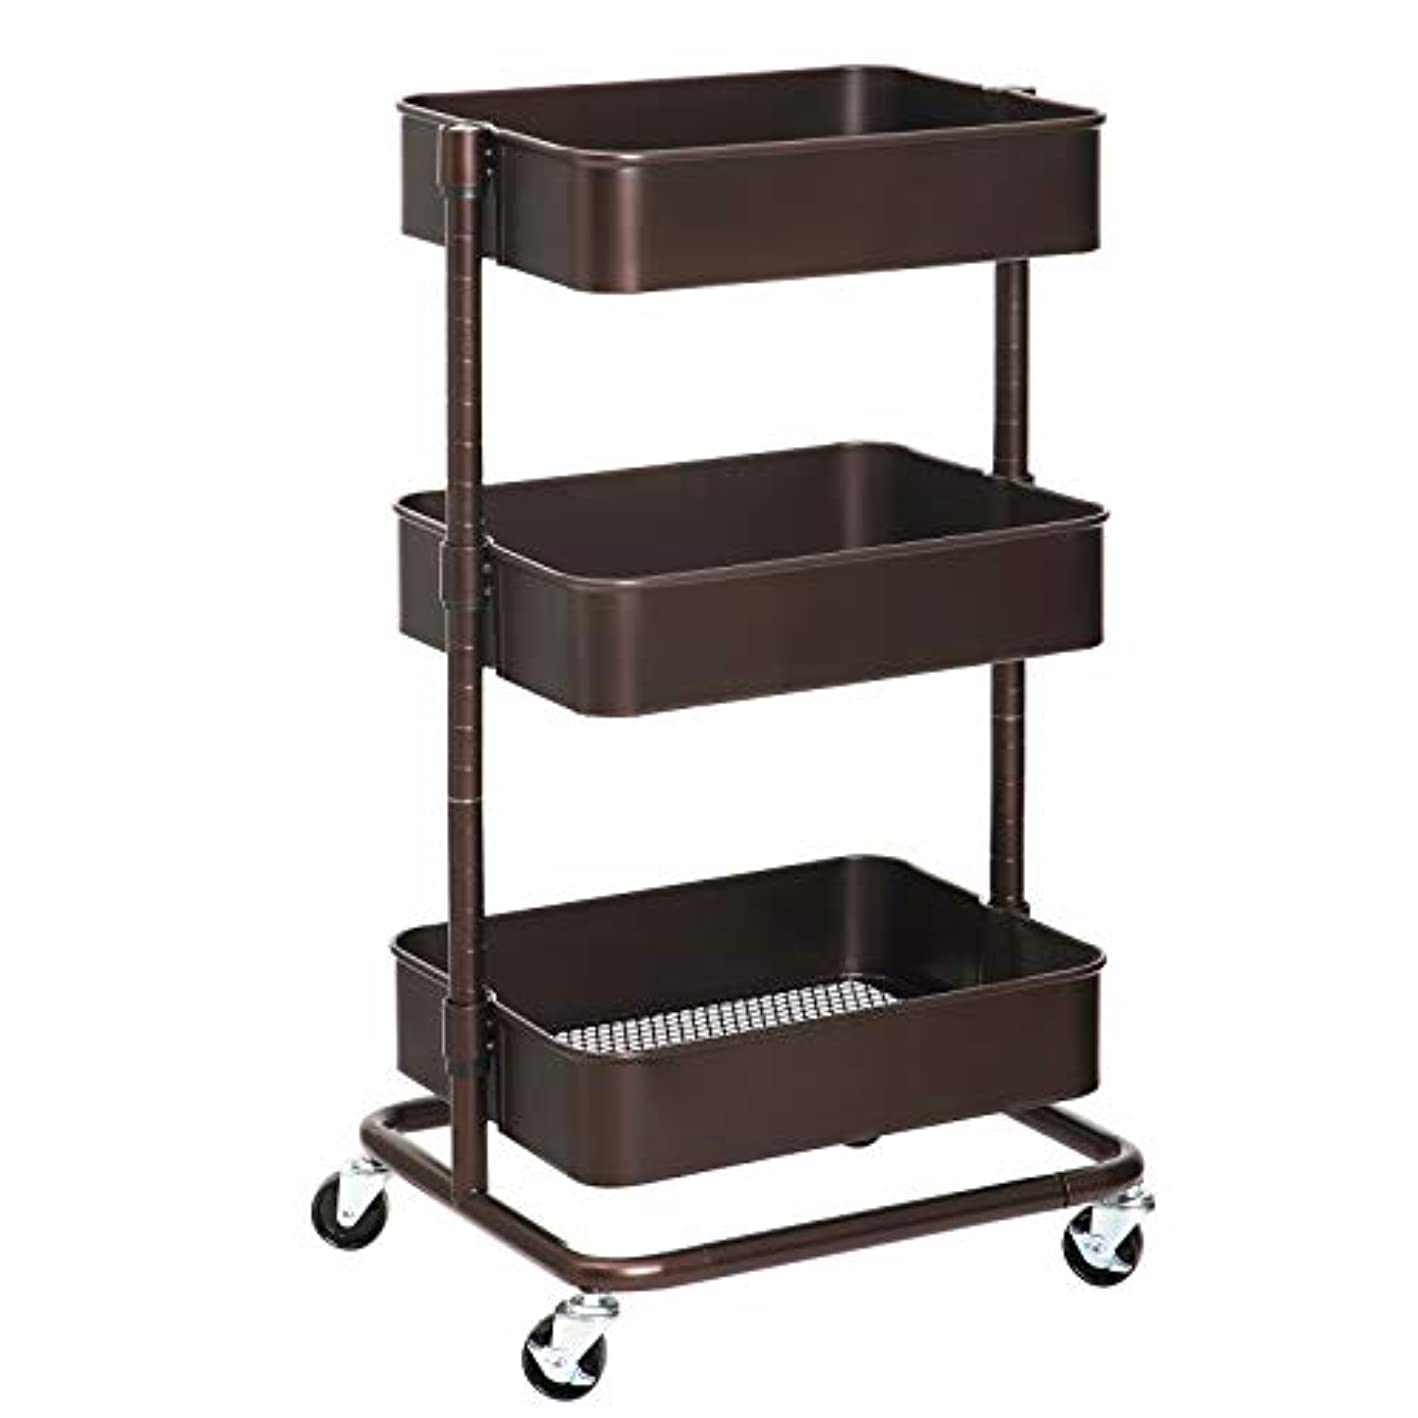 SONGMICS 3-Tier Metal Rolling Cart, Utility Cart, Kitchen Cart with Adjustable Shelves, Storage Trolley with 2 Brakes, Easy Assembly, for Kitchen, Office, Bathroom, Bronze UBSC60A